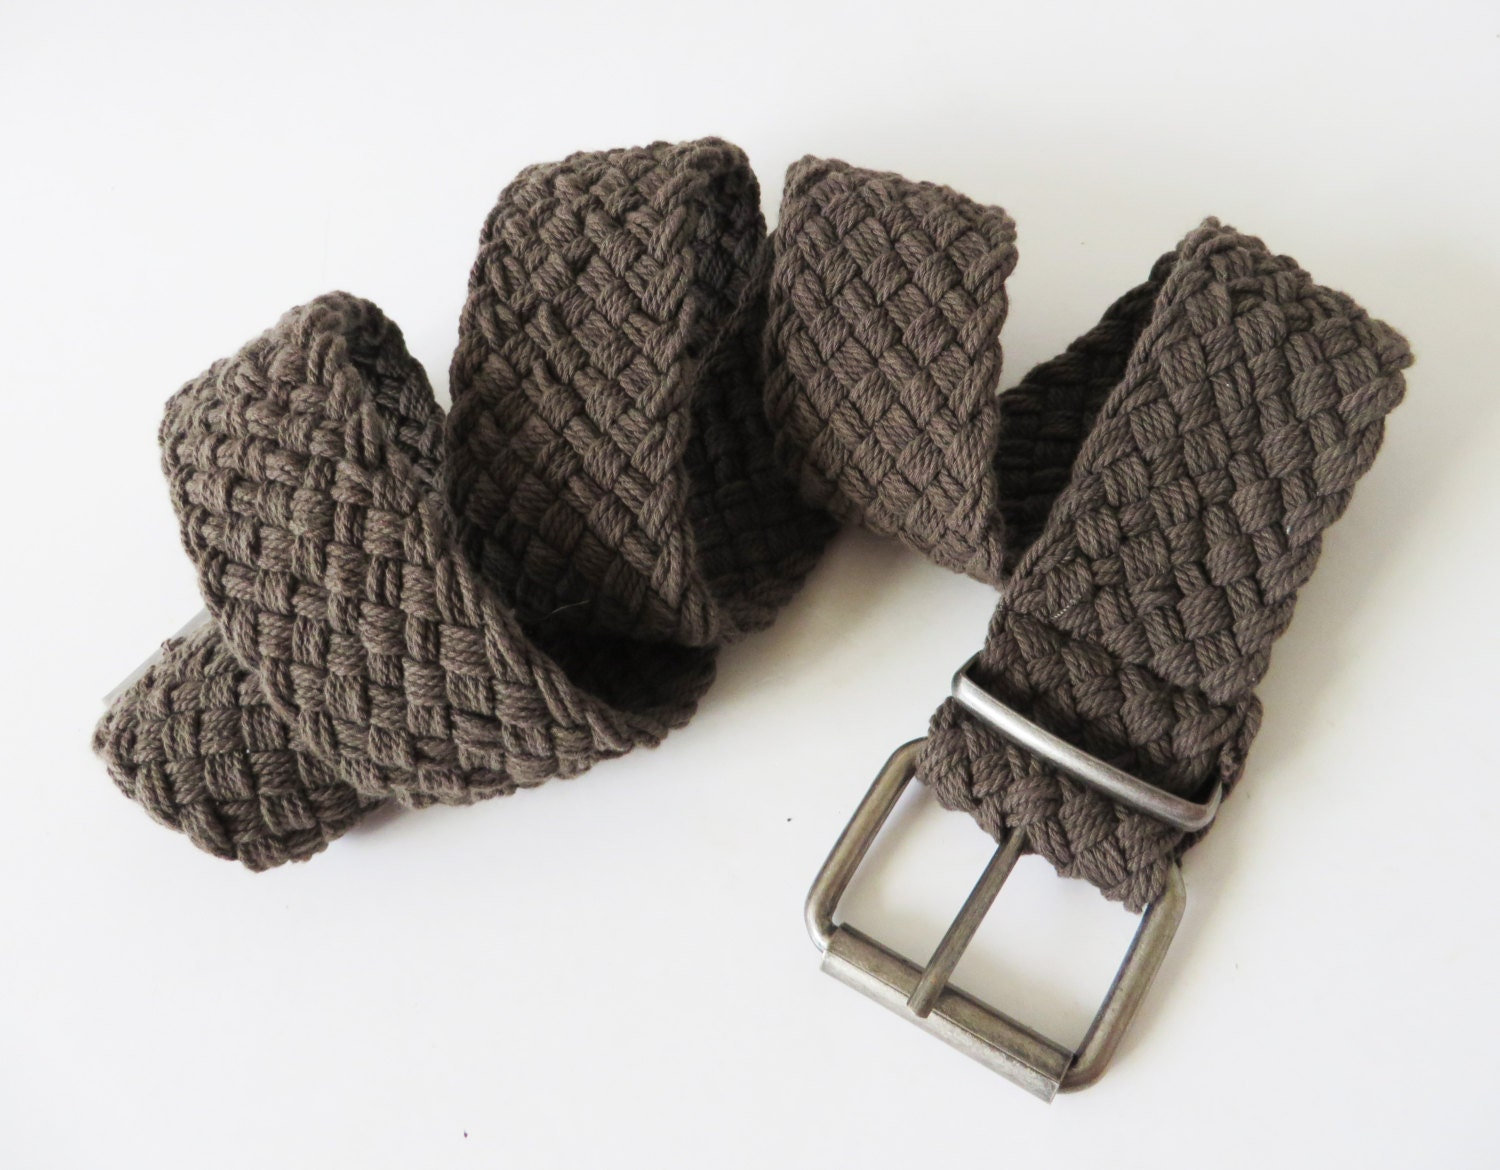 Find the best Essential Braided Leather Belt at makeshop-mdrcky9h.ga Our high quality Men's Accessories are thoughtfully designed and built to last season after season.